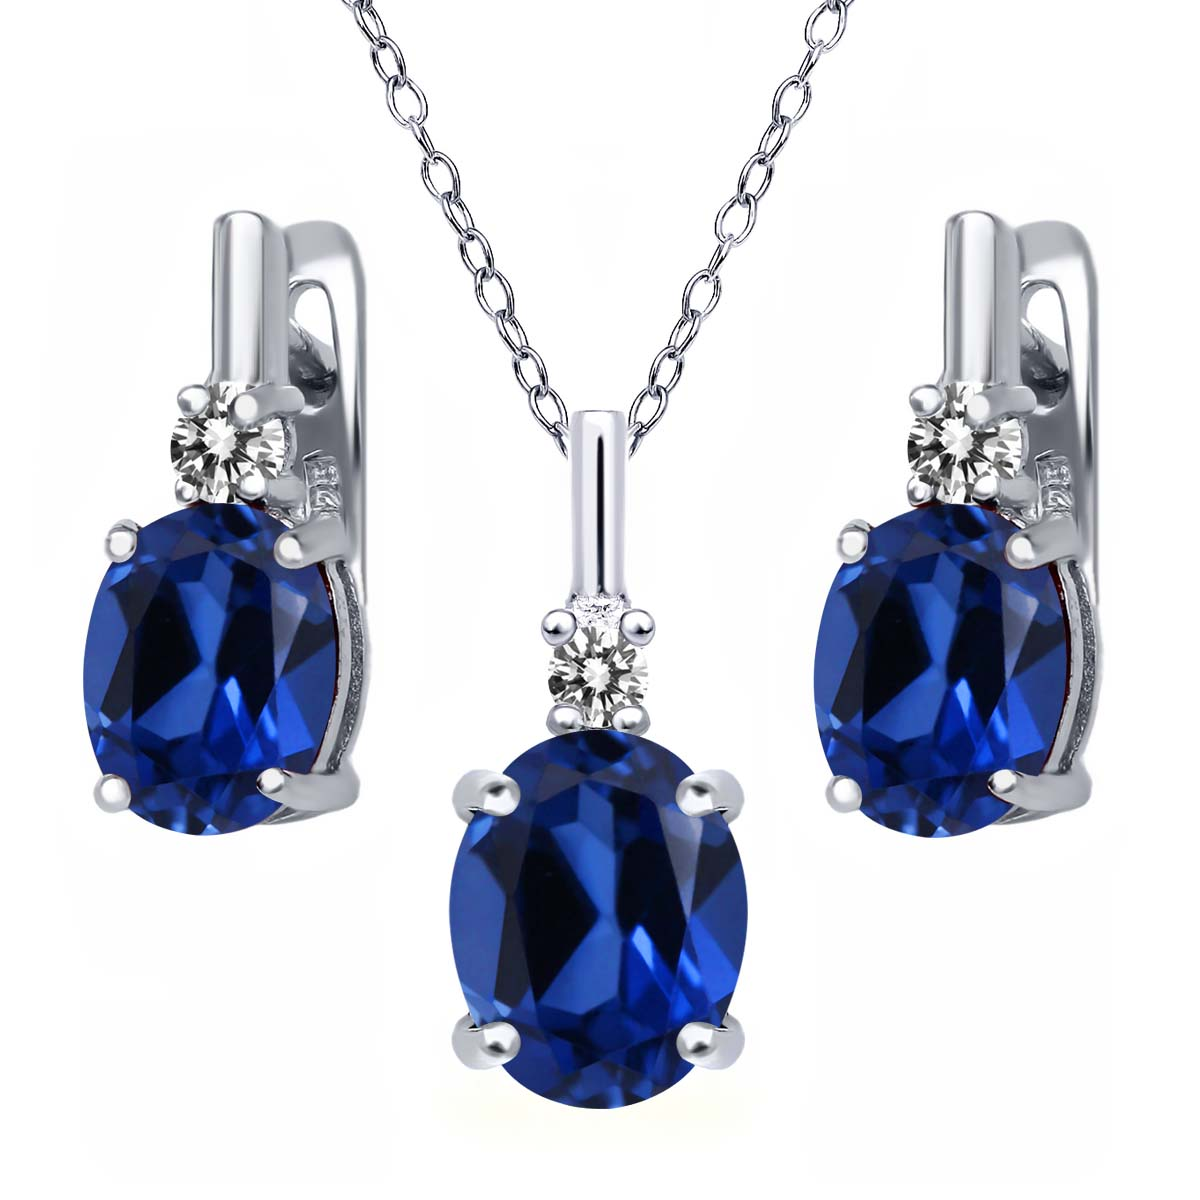 6.97 Ct Blue Simulated Sapphire White Diamond 925 Silver Pendant Earrings Set by